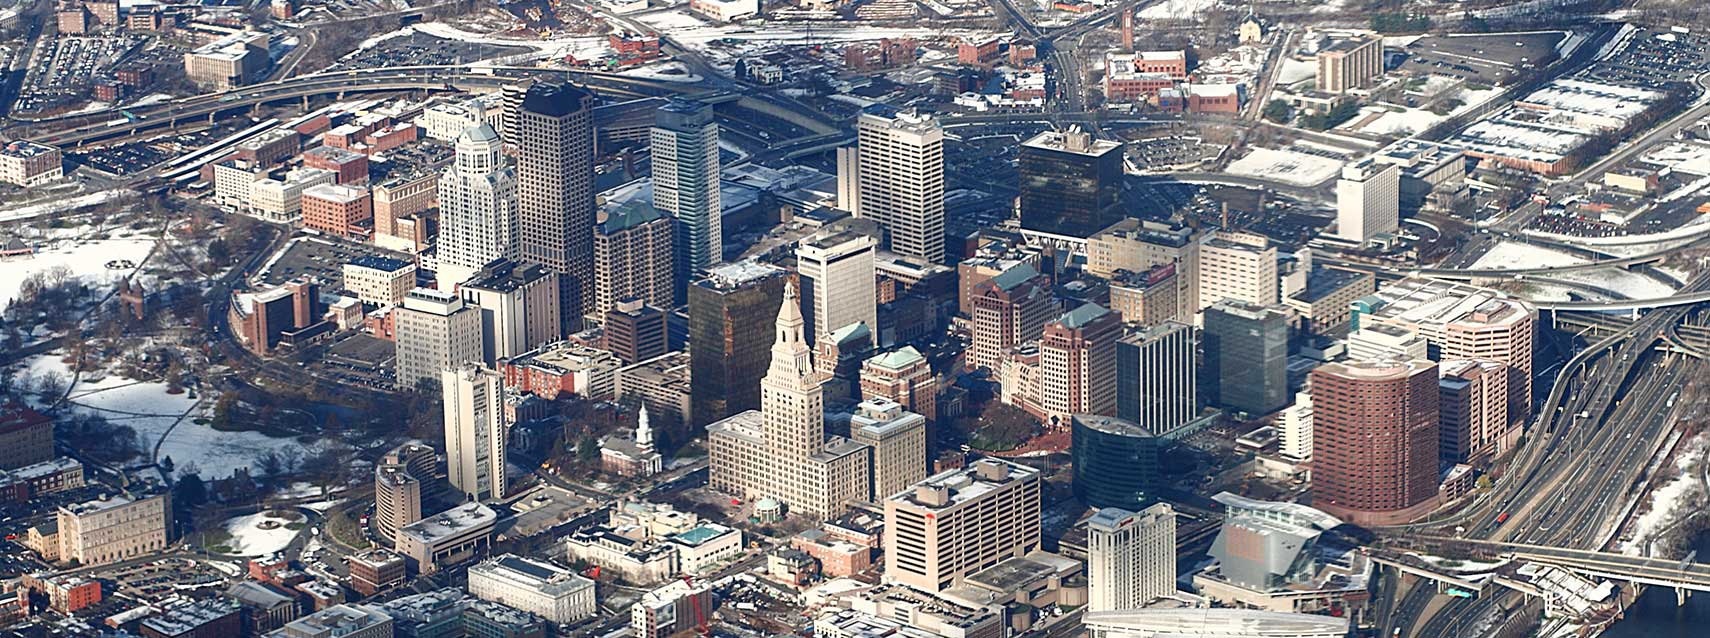 Google Map of Hartford Connecticut USA  Nations Online Project